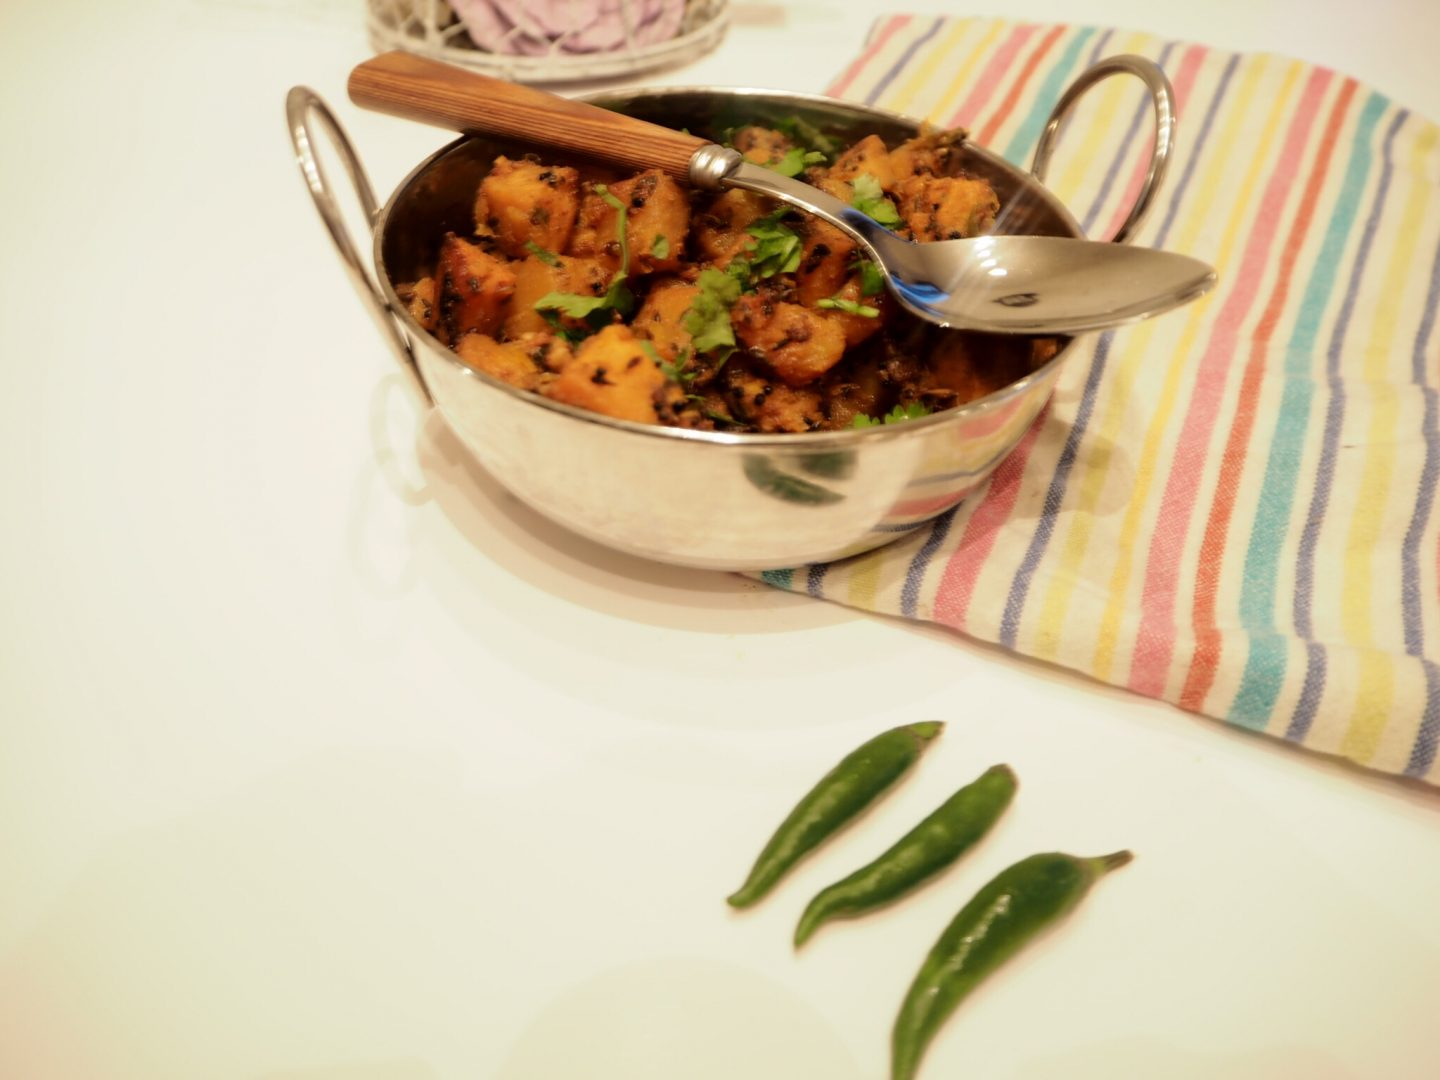 Spice and Squash – how I like my butternut squash in autumn